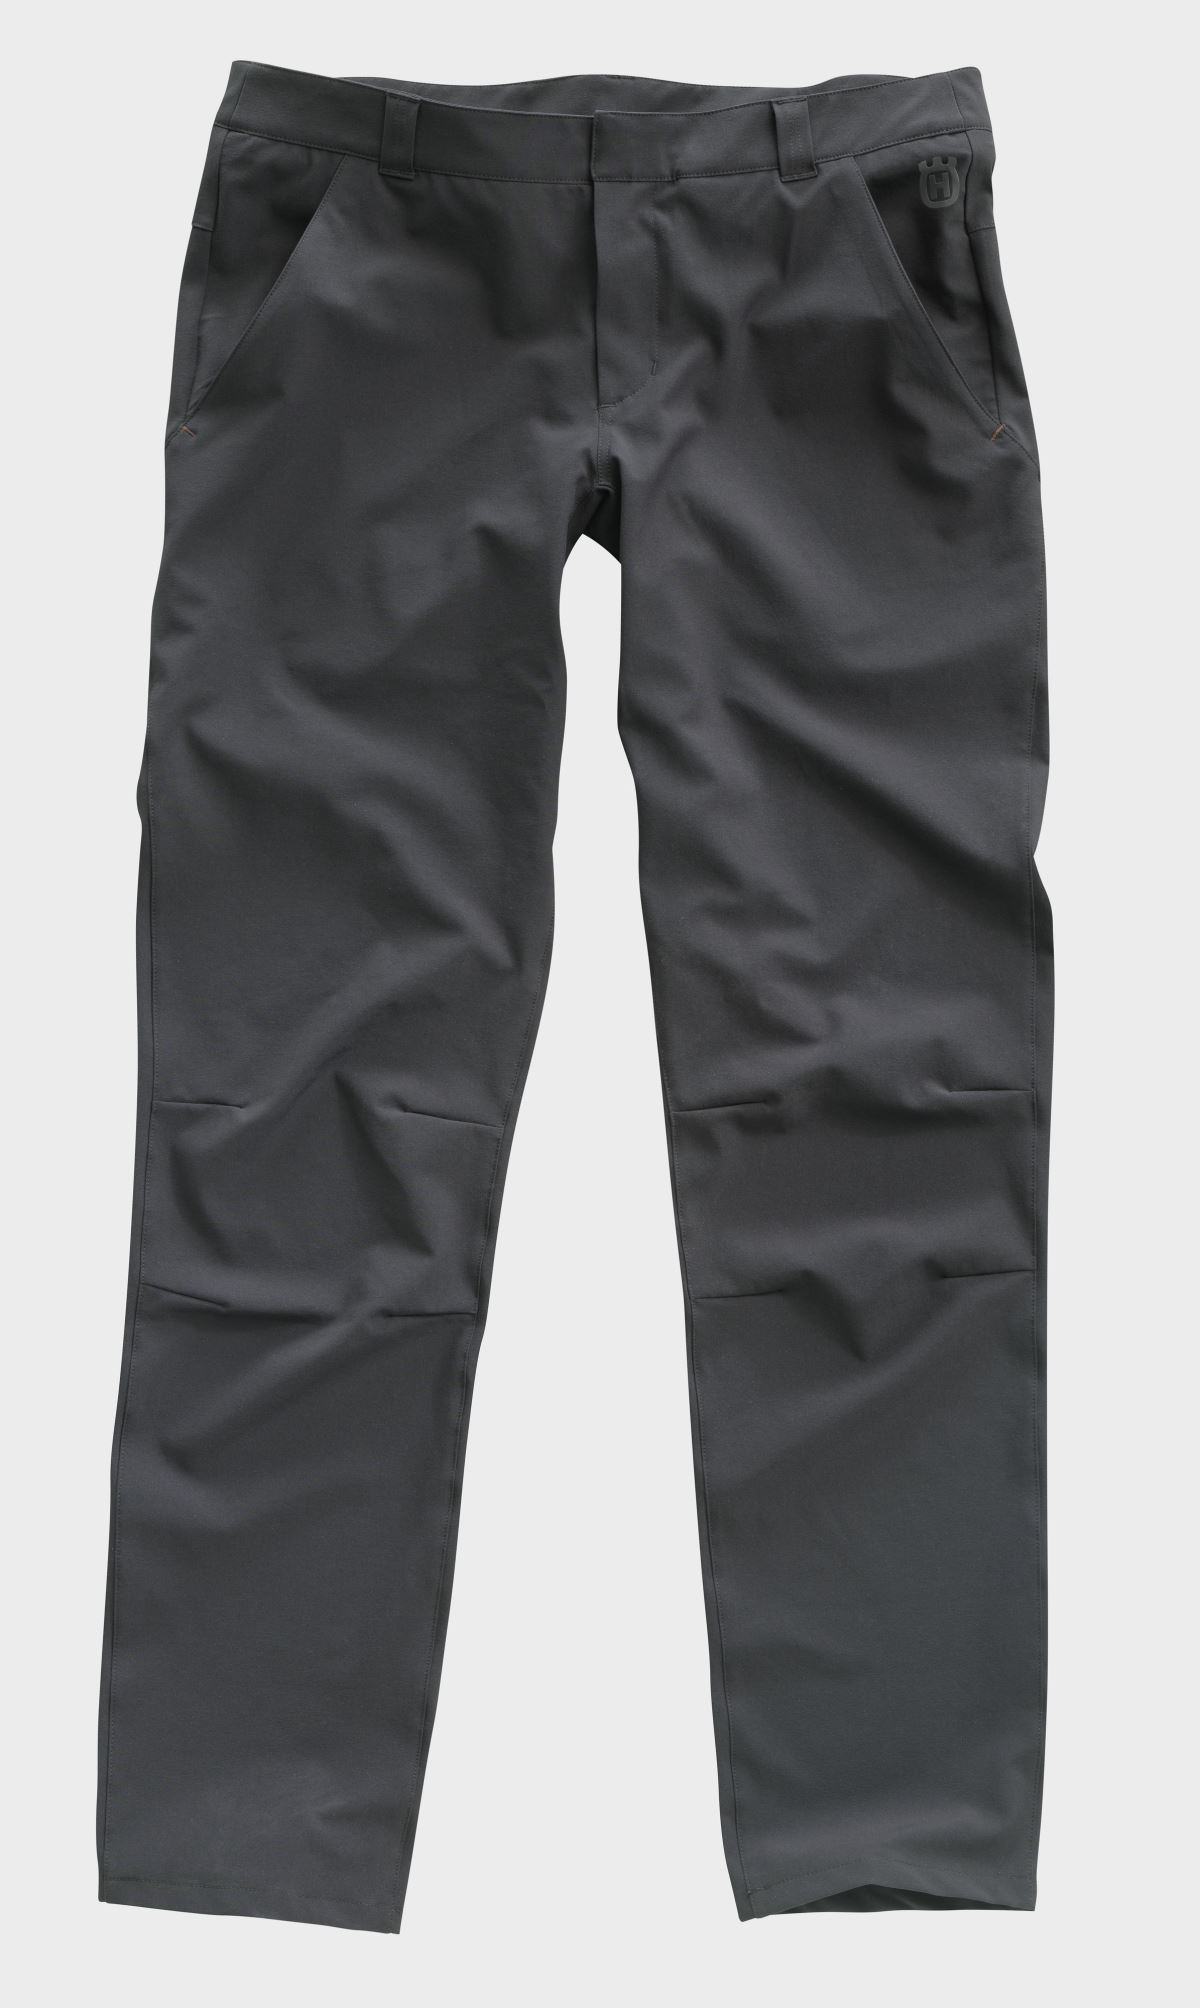 REMOTE PANTS - CASUAL CLOTHING COLLECTION 2020